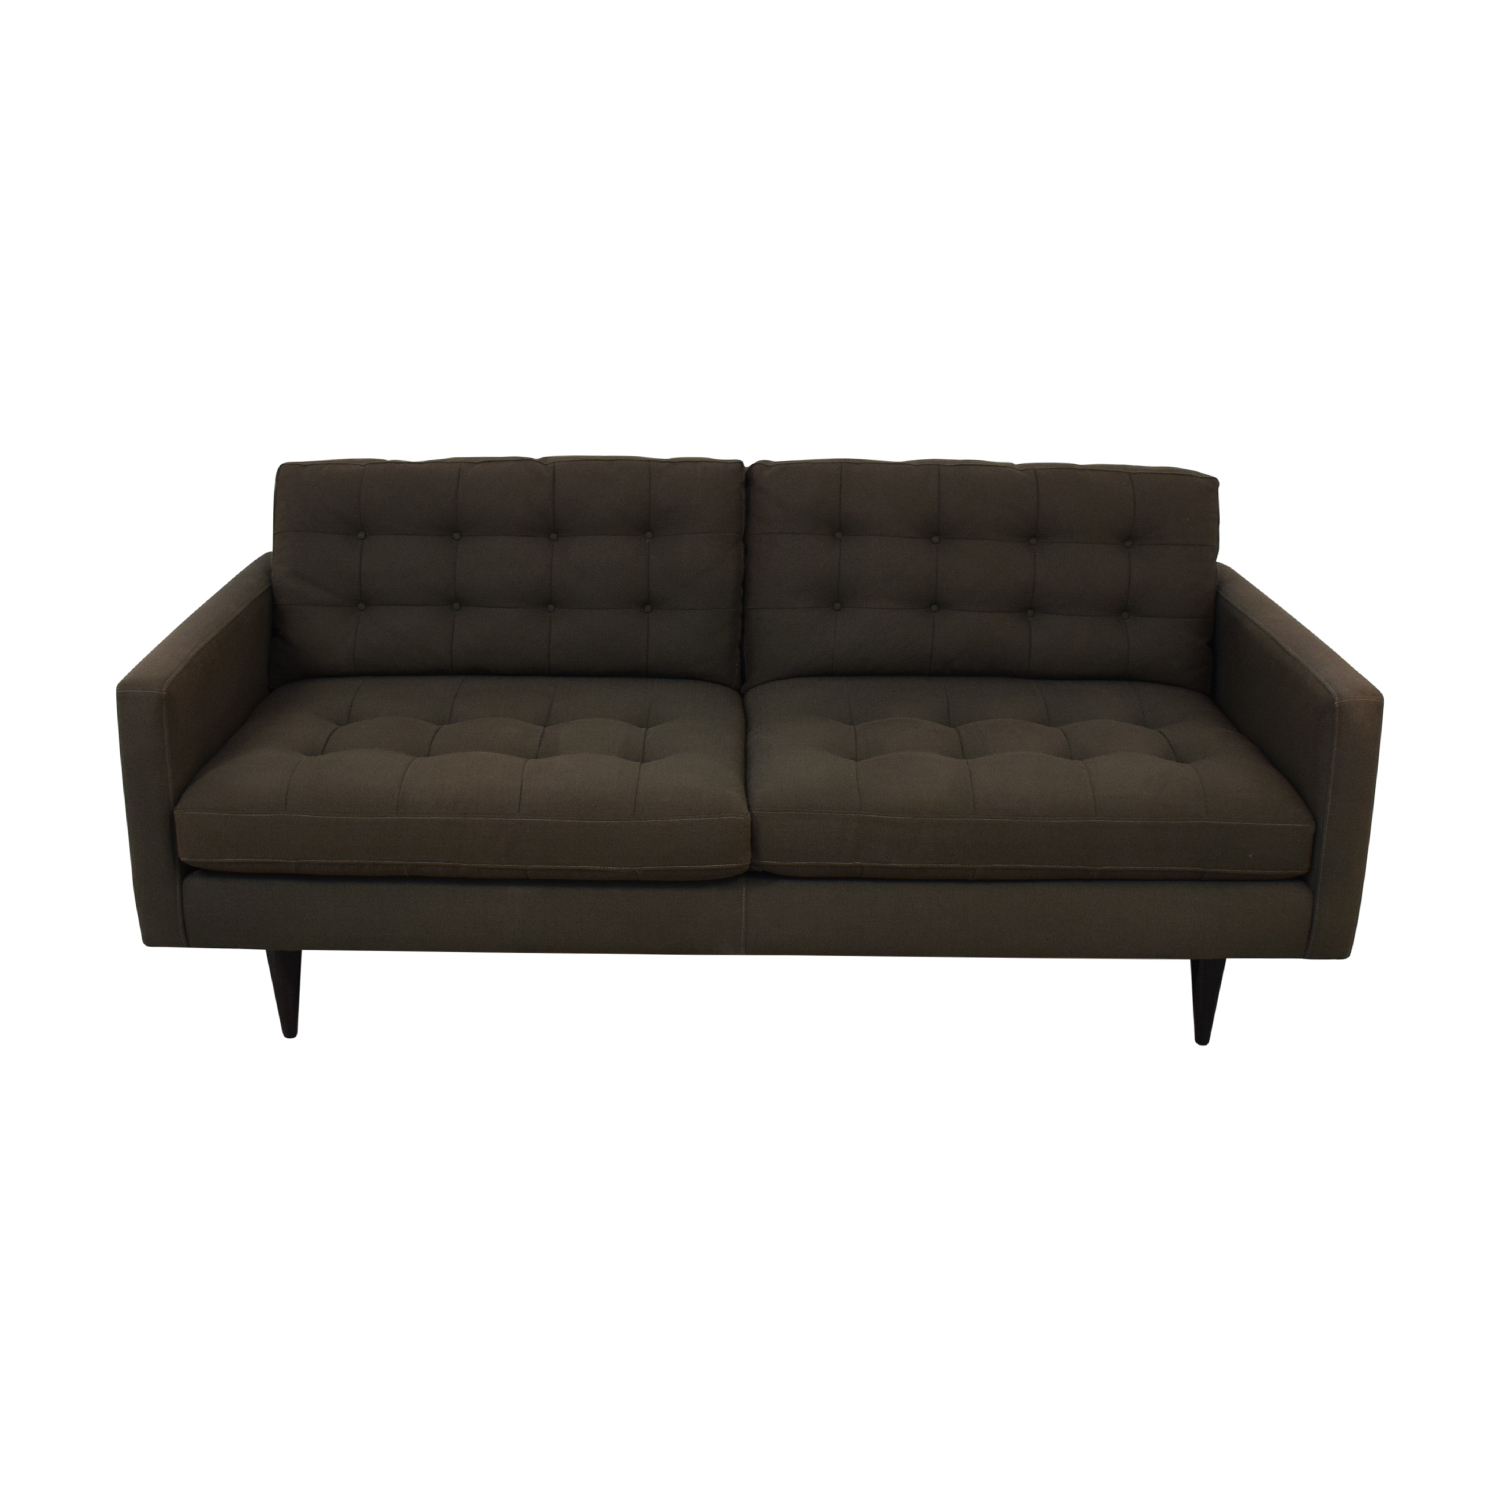 buy Crate & Barrel Crate & Barrel Petrie Midcentury Sofa online